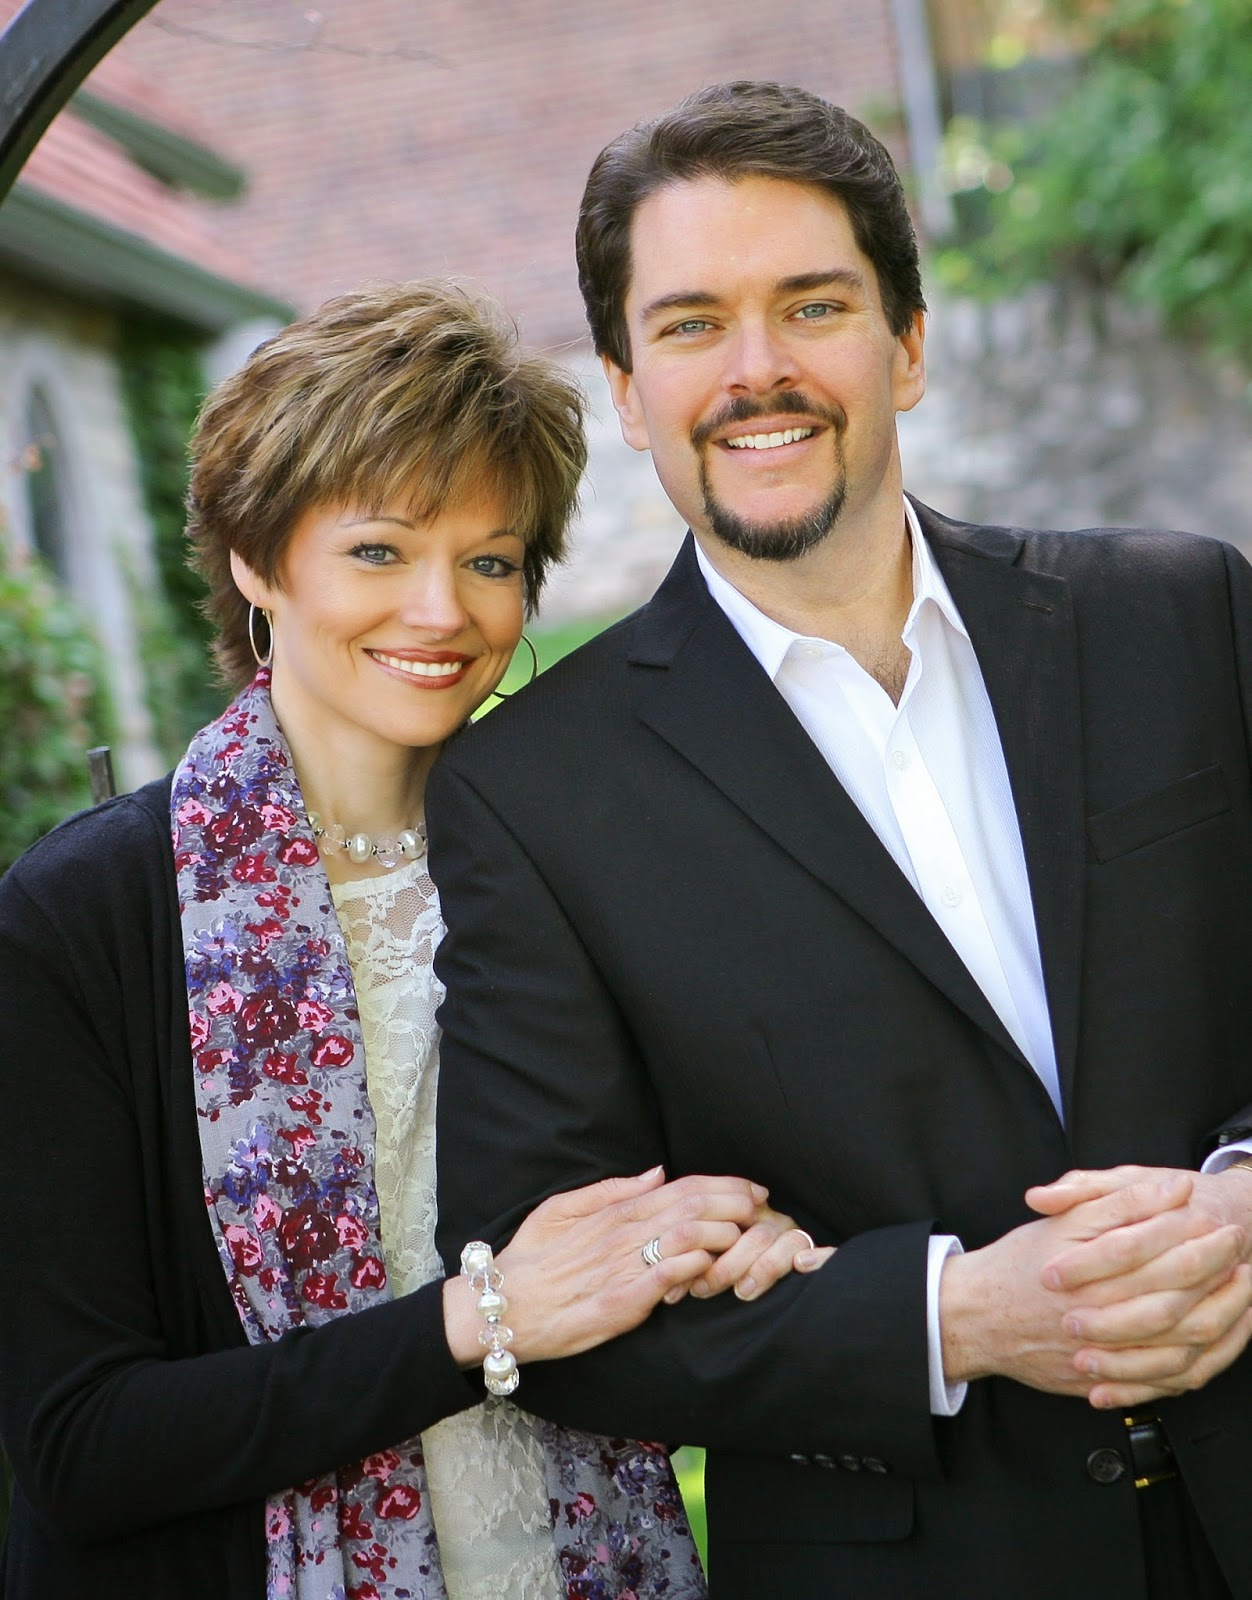 Musical artists Phil and Pam Morgan